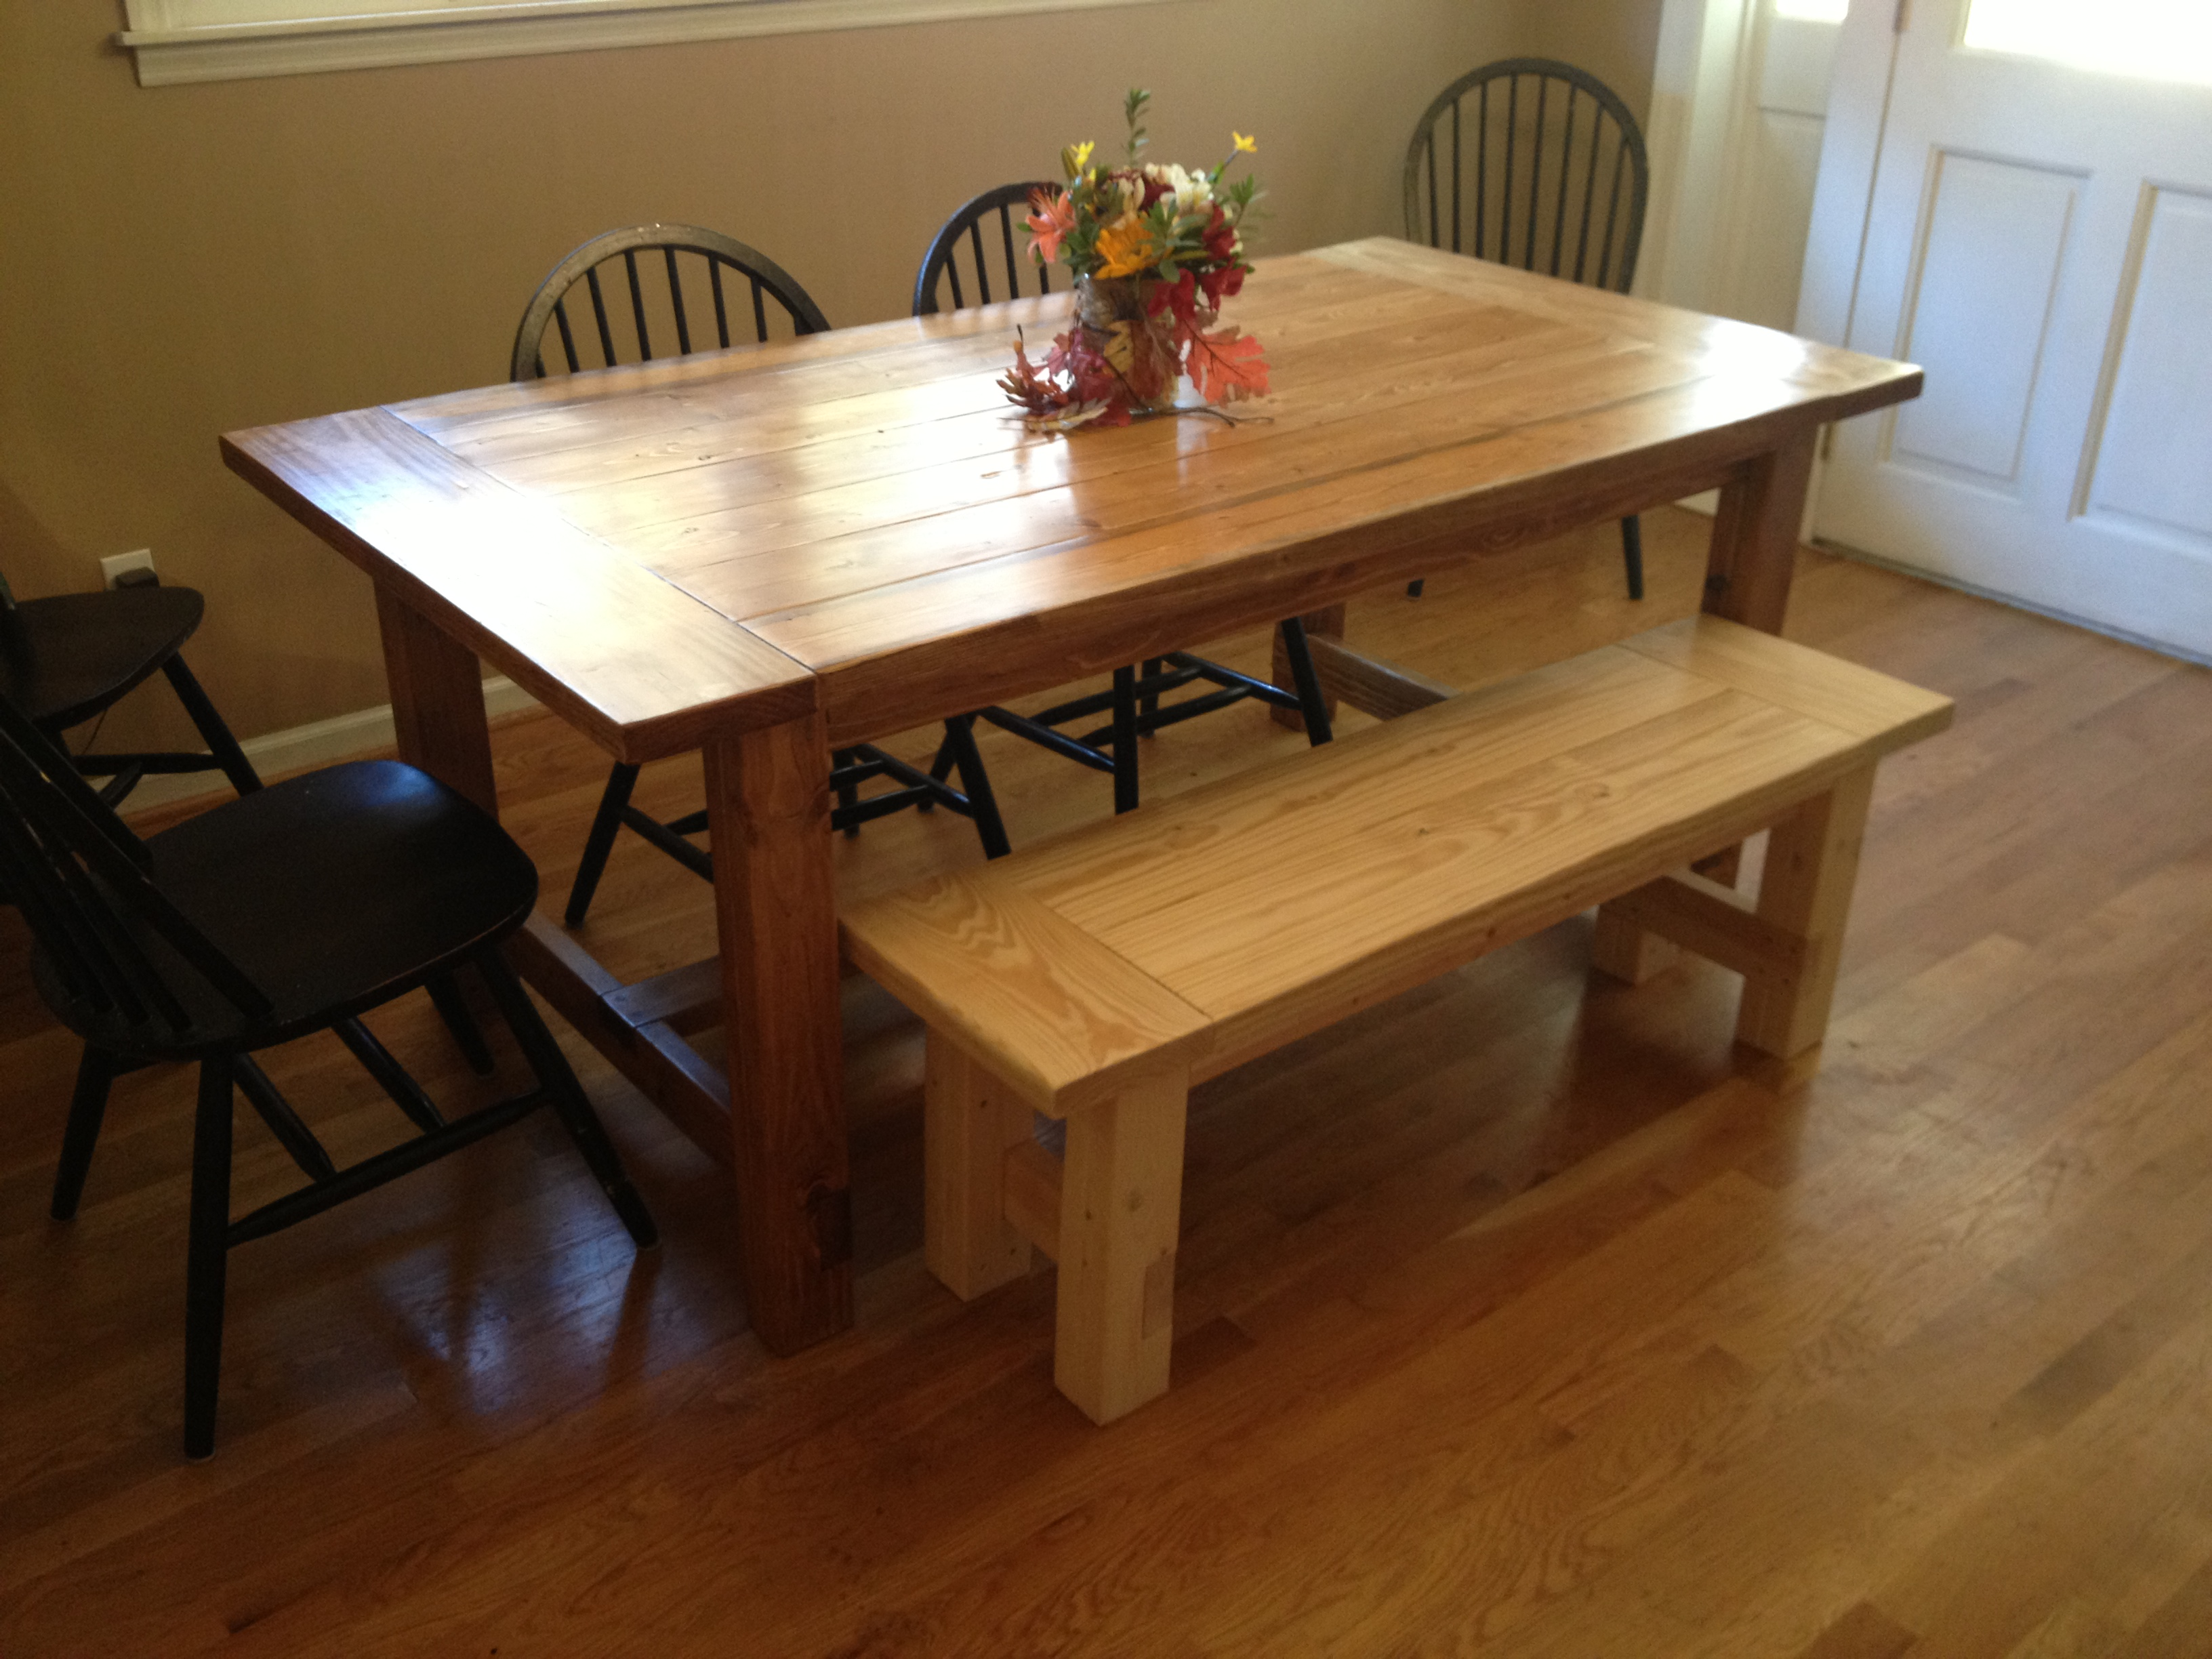 plans for making a rustic farmhouse table bench a lesson learned